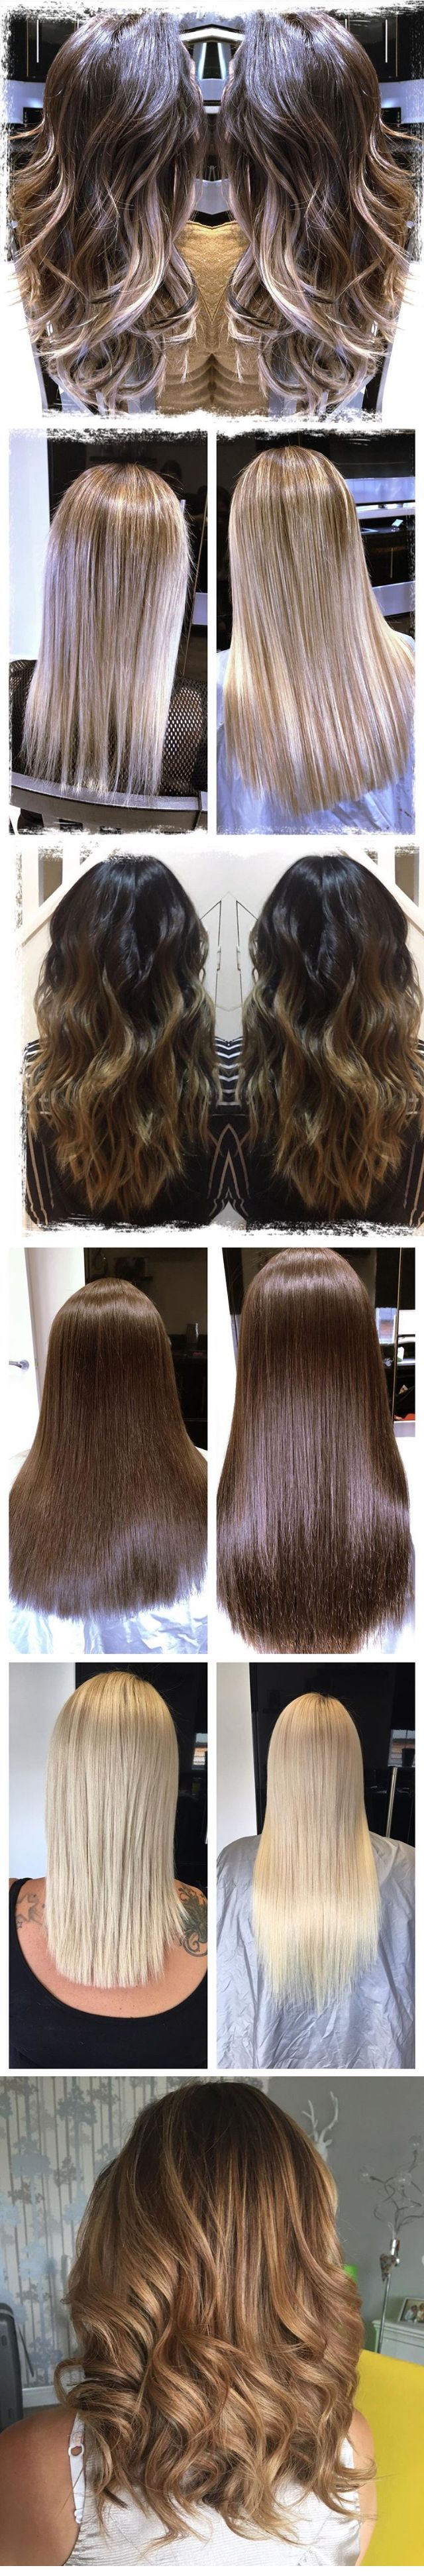 Very motivating before & after photos from our valued and regular customer Kelly Elmes.  Kelly from the Canvey Island/Essex area and she is known to be a very experienced and talented hair stylist and extensionist.   https://www.instagram.com/kellyelmes  Do you want FREE promotion and exposure, providing you use our hair extensions, send us a quick email and we will get your details submitted :)  #beforeandafterphotos #hairextensionreview #remyhairextensions #customerfeedback…